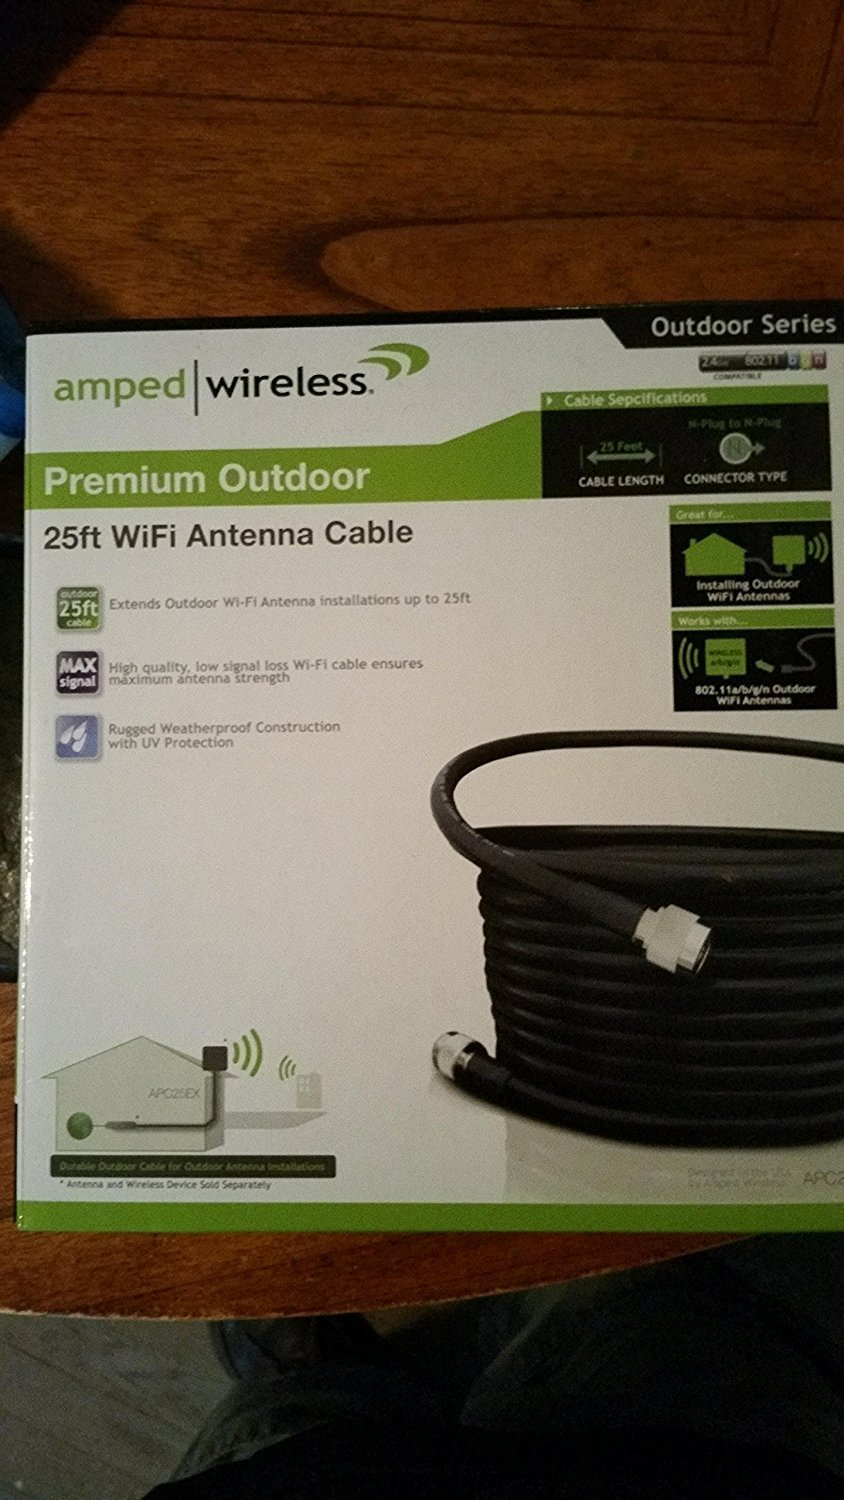 Amped Wireless APC25EX Premium 25ft Outdoor WiFi Antenna Cable by Amped Wireless